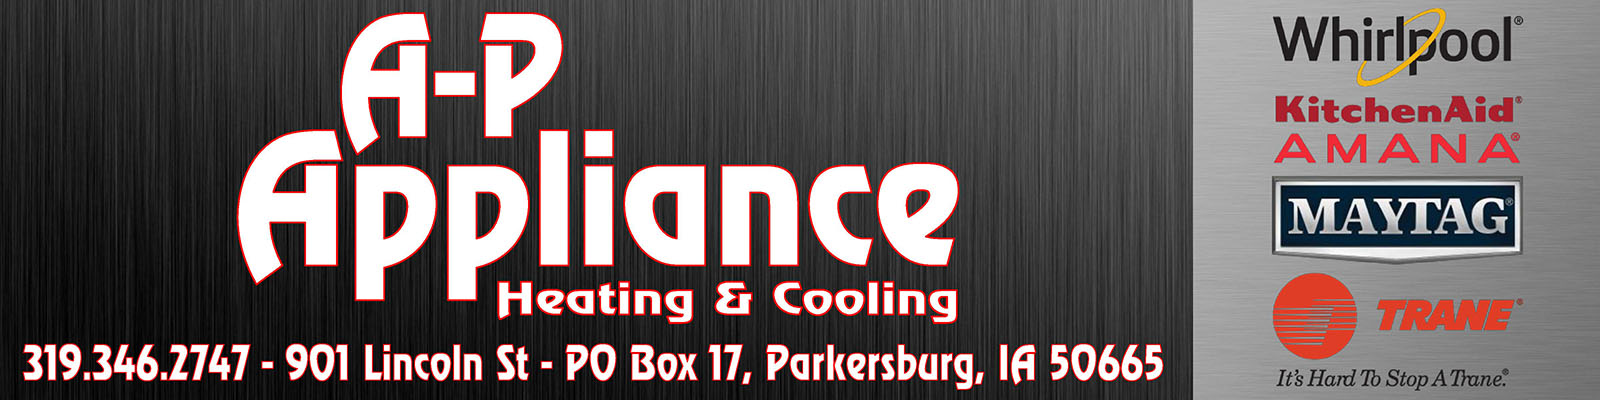 A-P Appliance Heating and Cooling banner